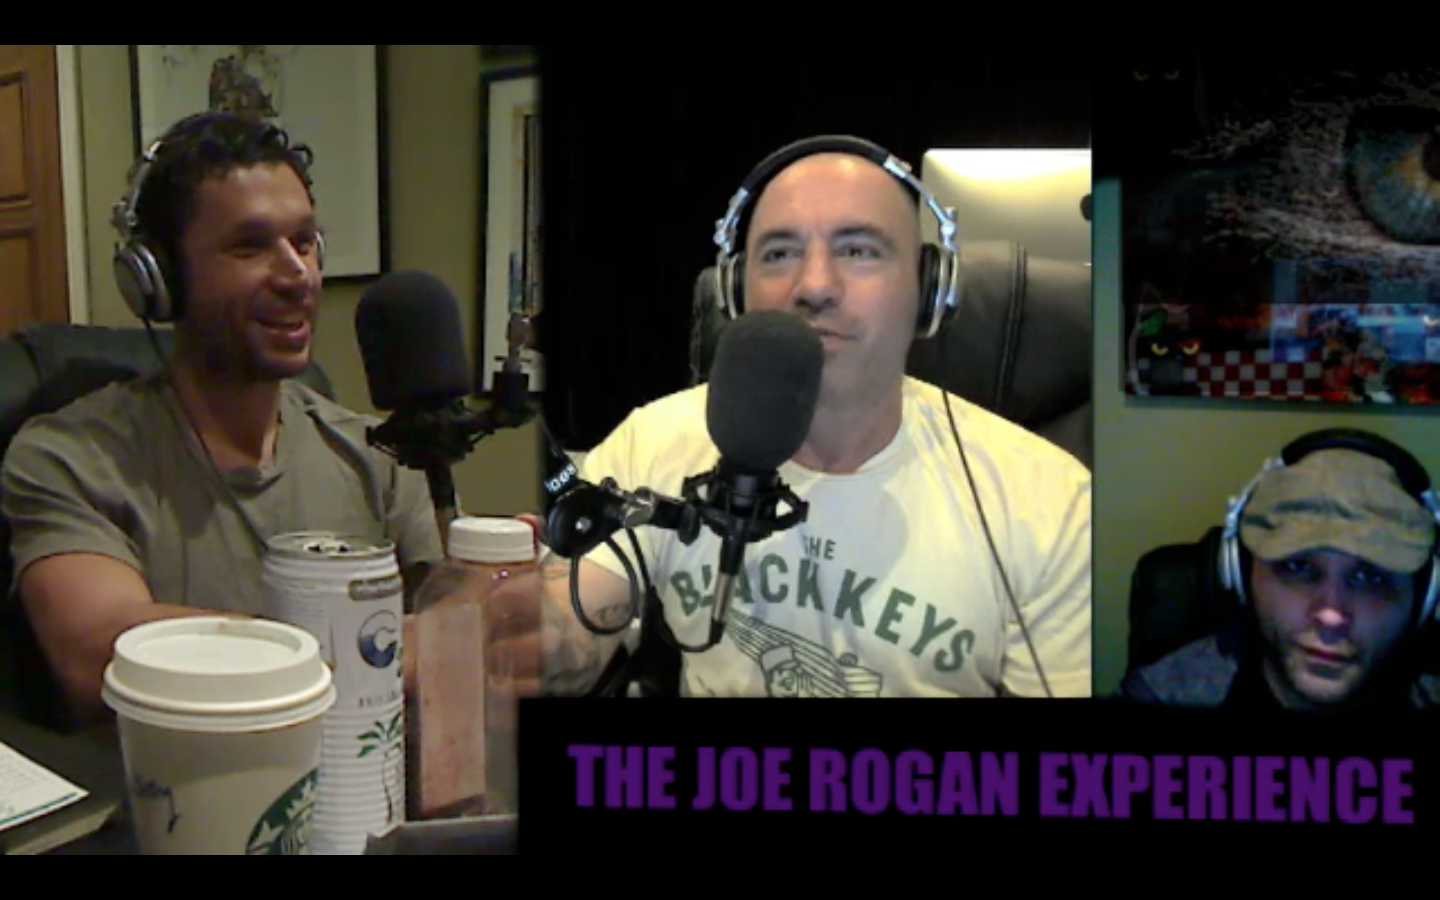 The Joe Rogan Experience #195 - Aubrey Marcus, Brian Redban